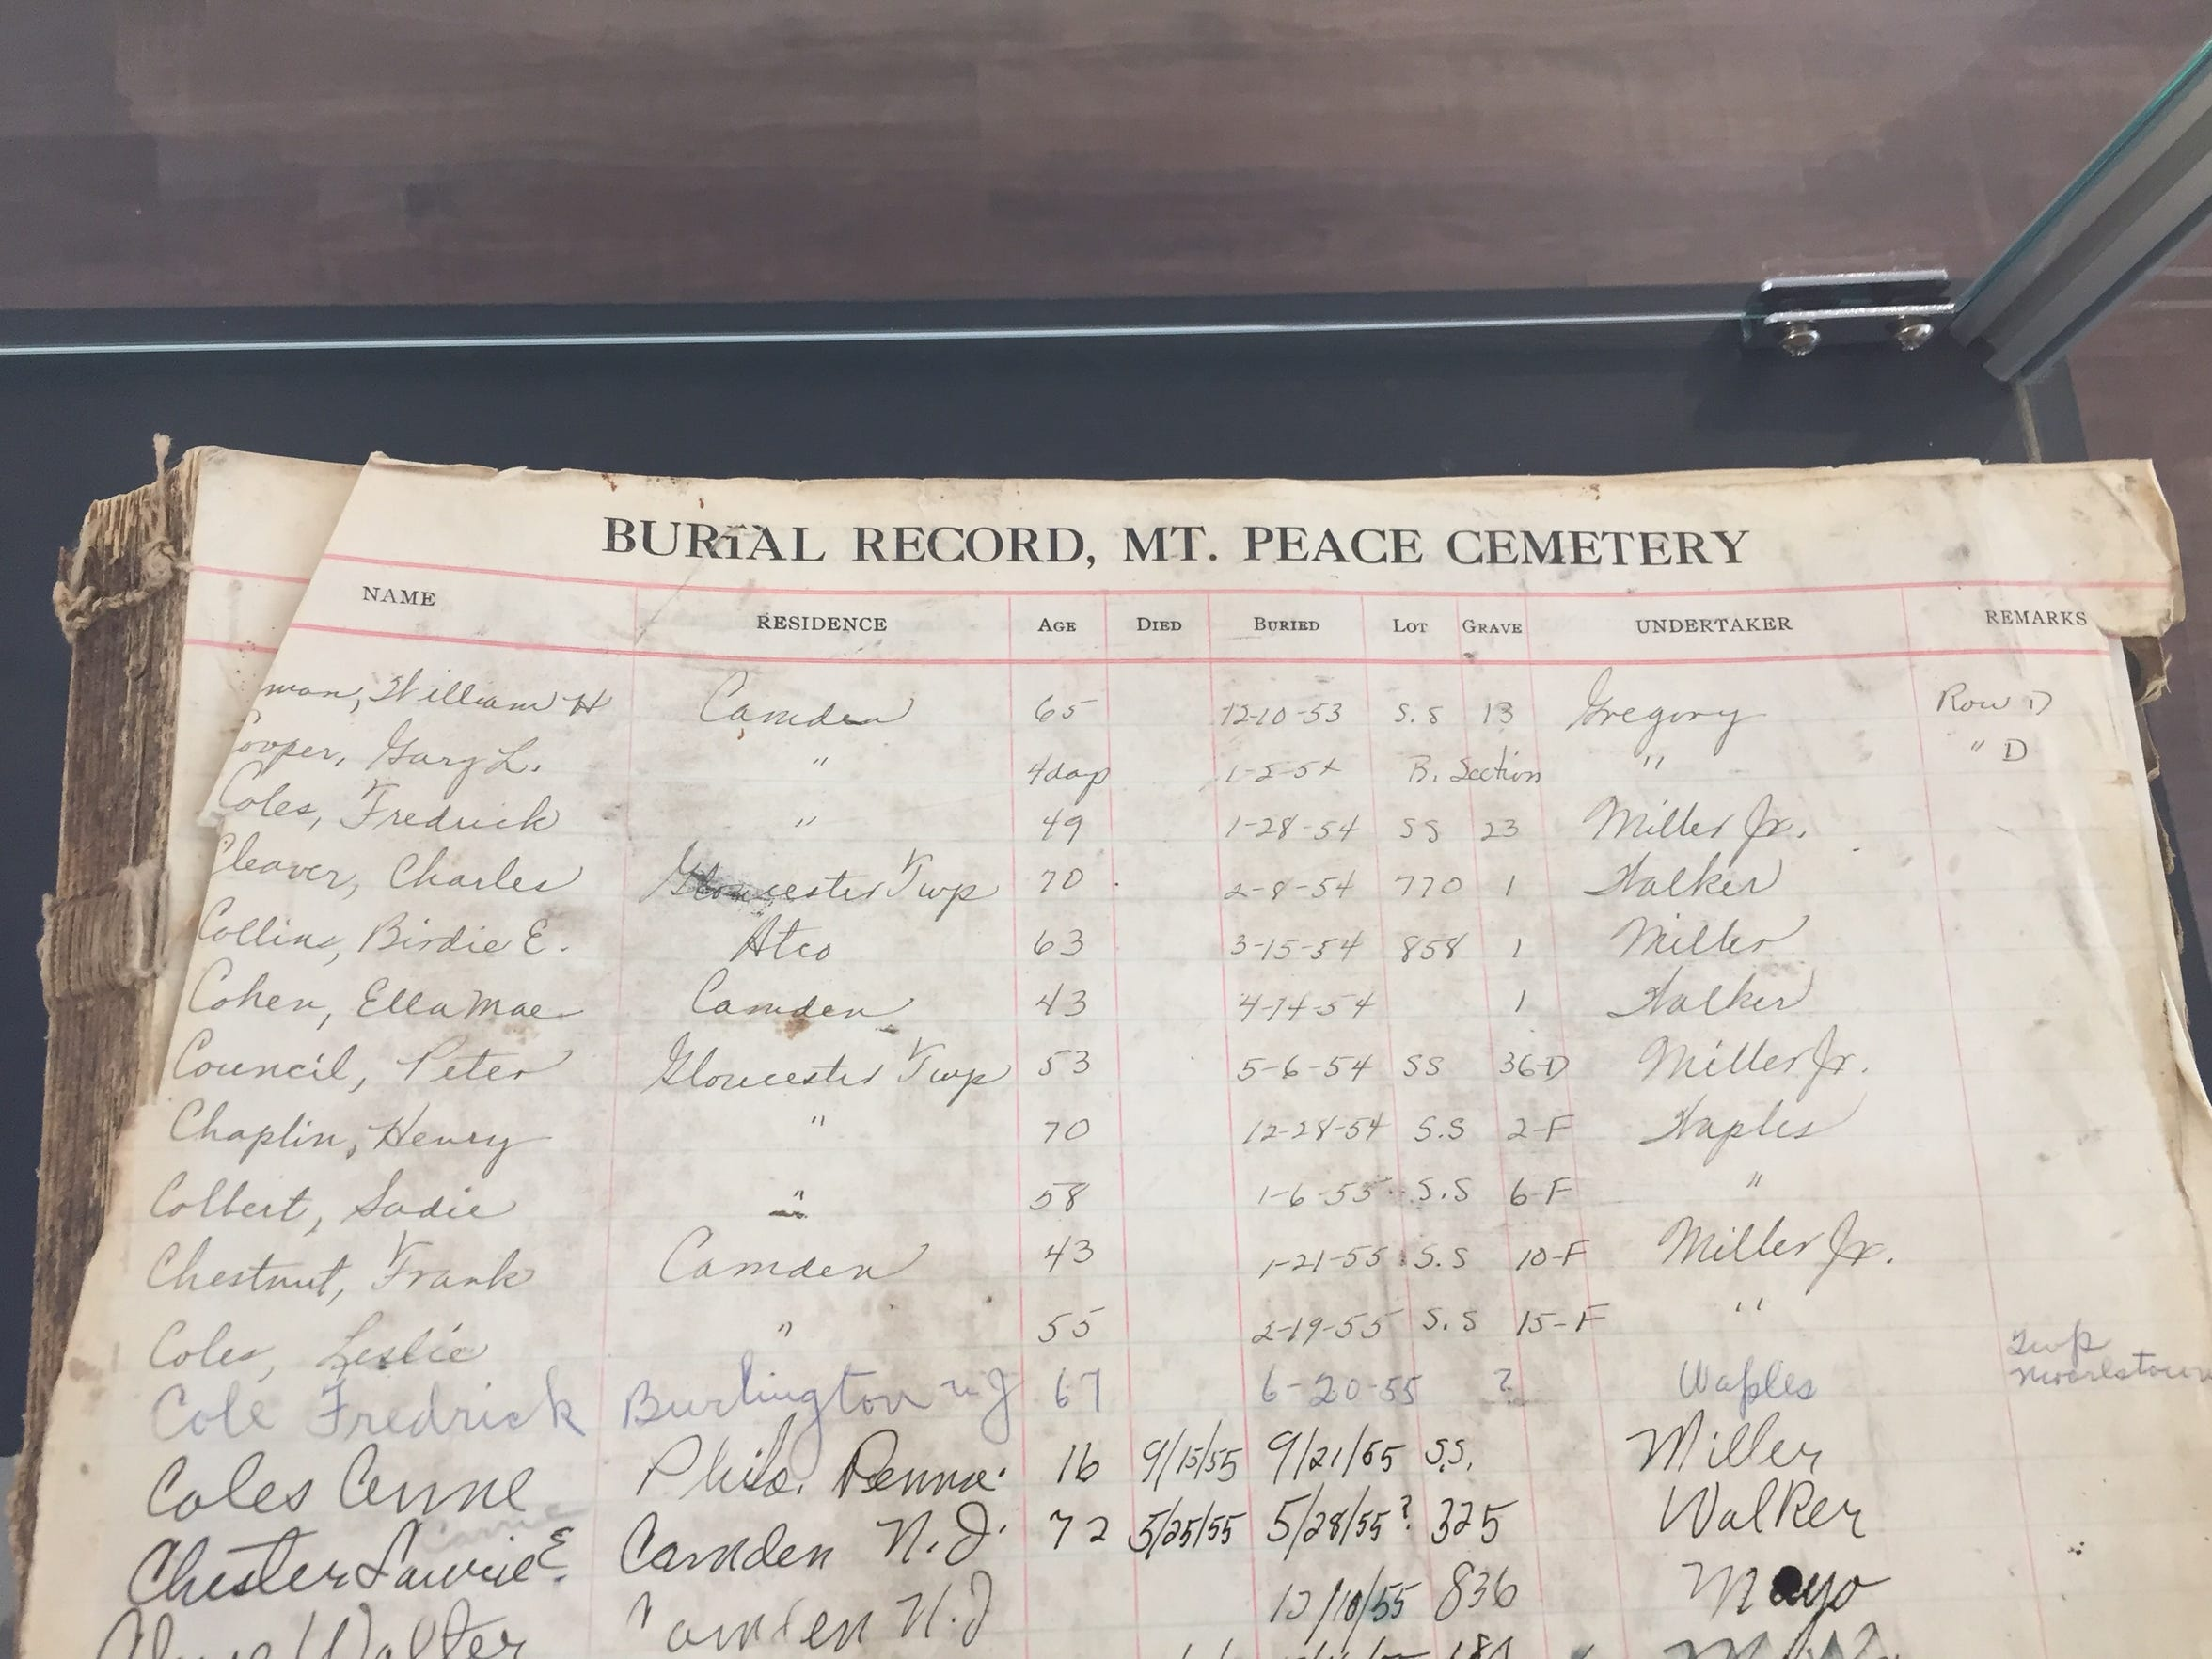 A burial register from Lawnside's Mount Peace Cemetery might help families find information that wasn't recorded elsewhere. It's among the artifacts on display at the Camden County Historical Society.